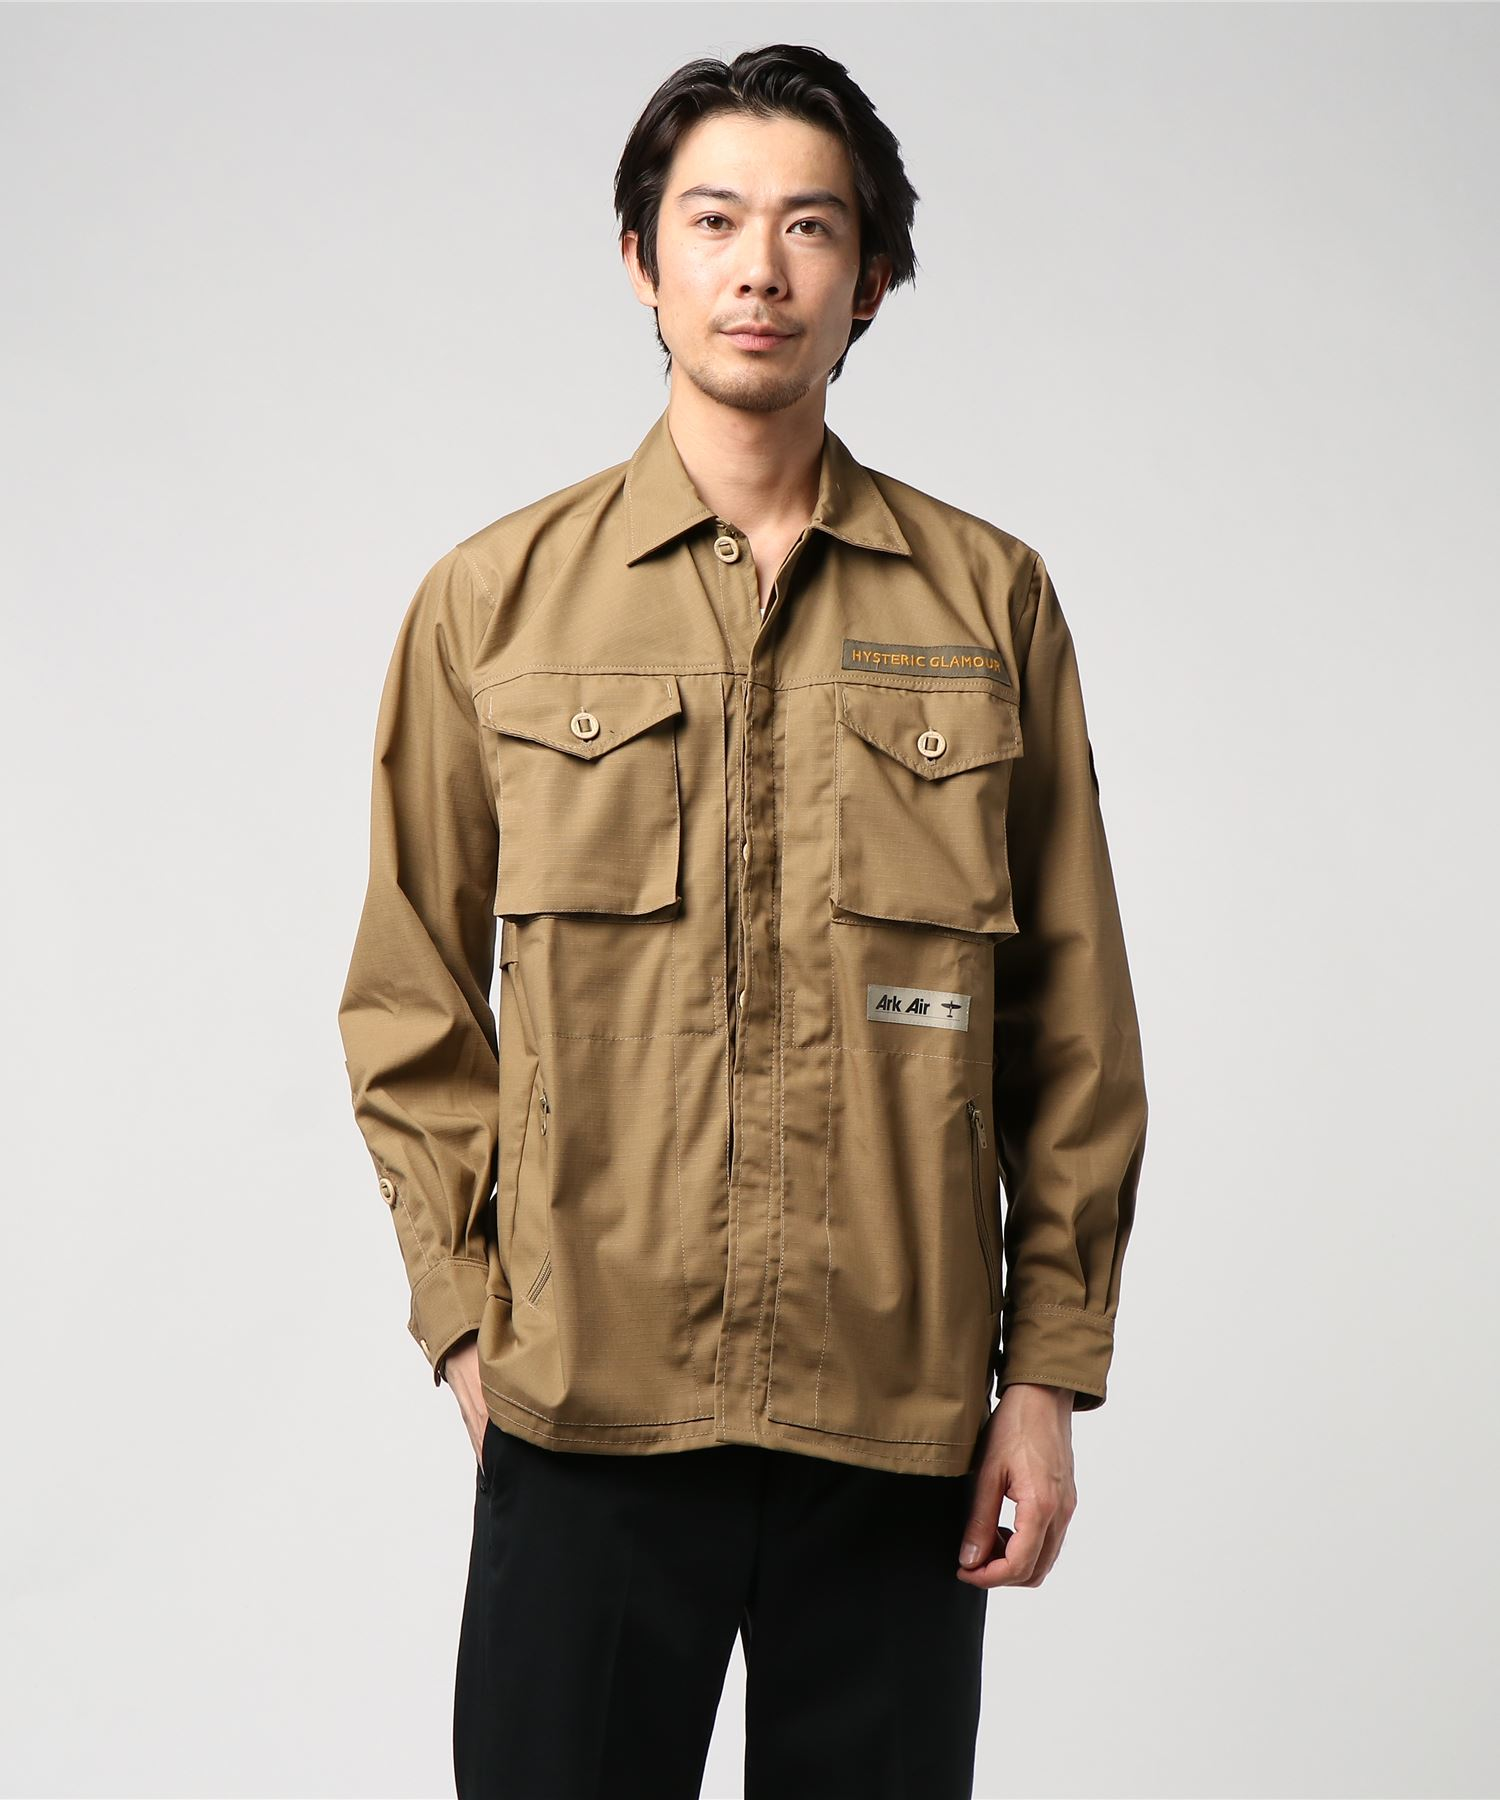 ArkAir×HYSTERIC JUNGLEシャツ